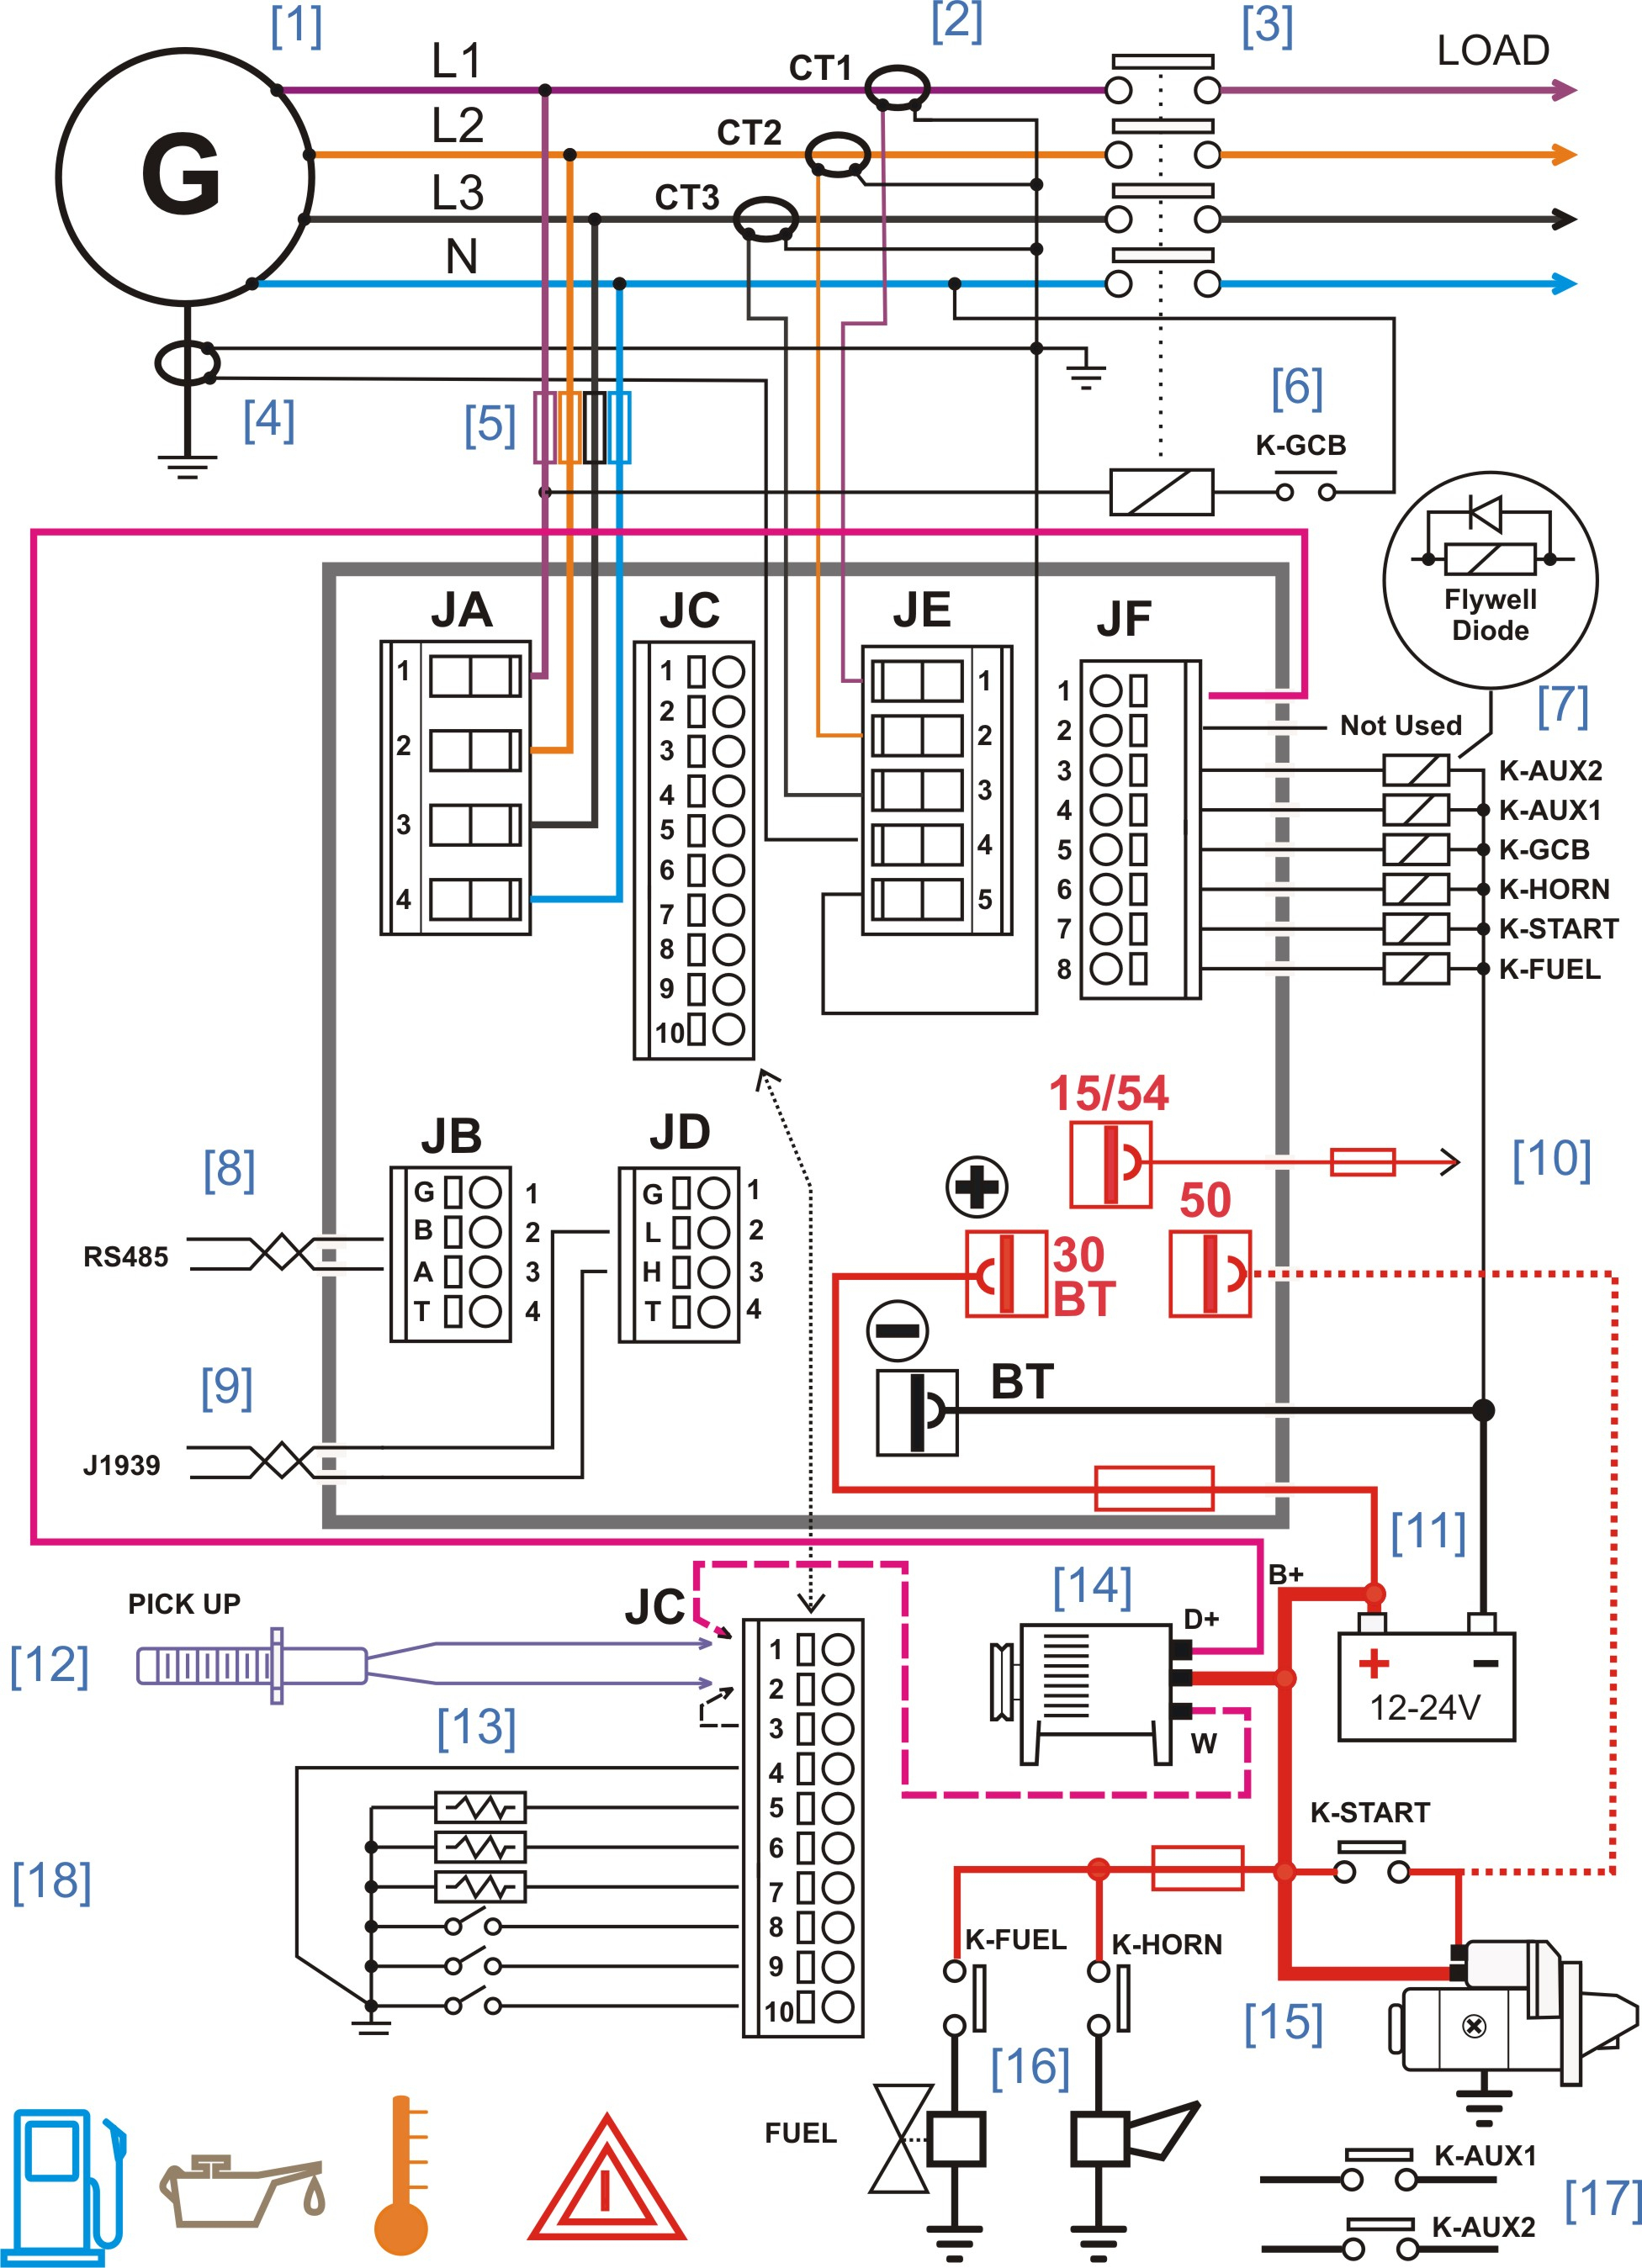 How To Read A Schematic - Learn Sparkfun